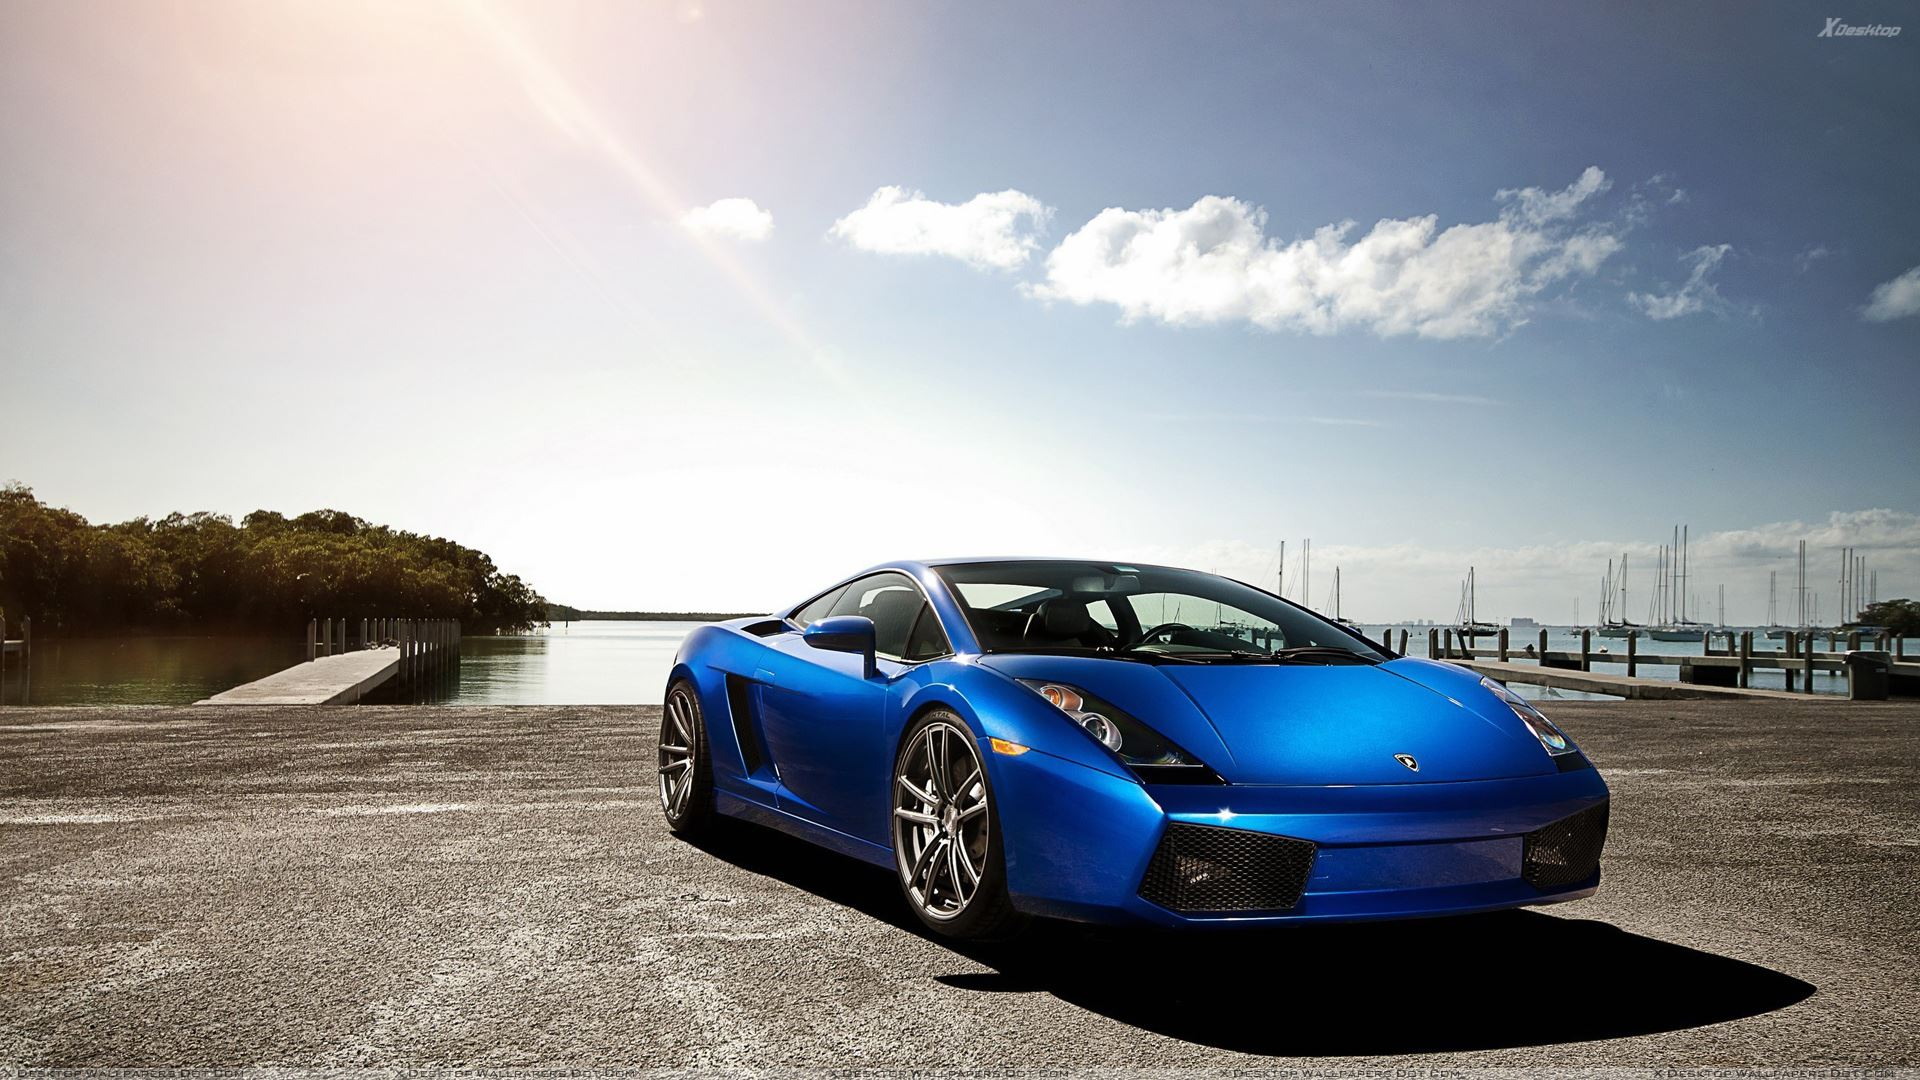 2012 Lamborghini Gallardo Lp560 Blue Color Front Wallpaper